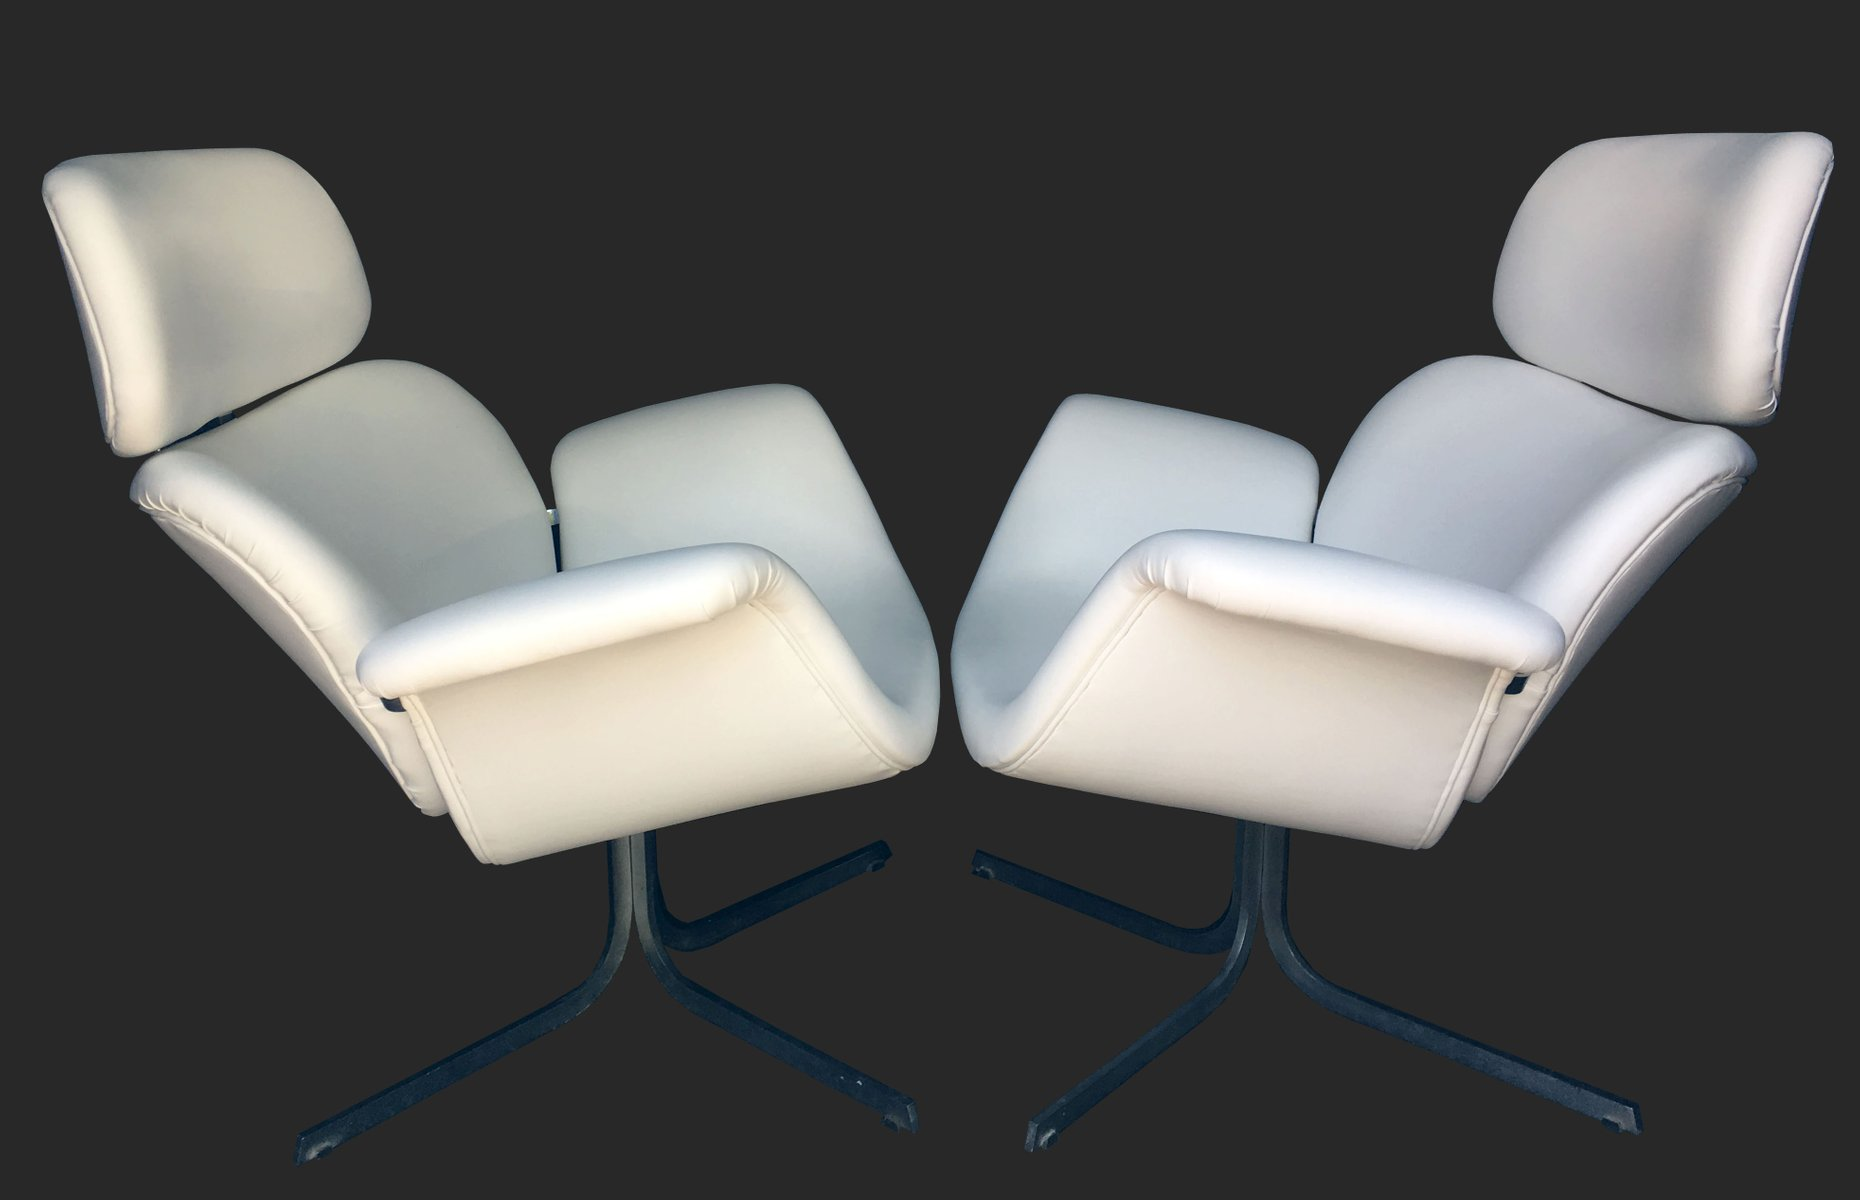 F545 large tulip lounge chairs by pierre paulin for artifort set of 2 for sale at pamono - Tulip chairs for sale ...